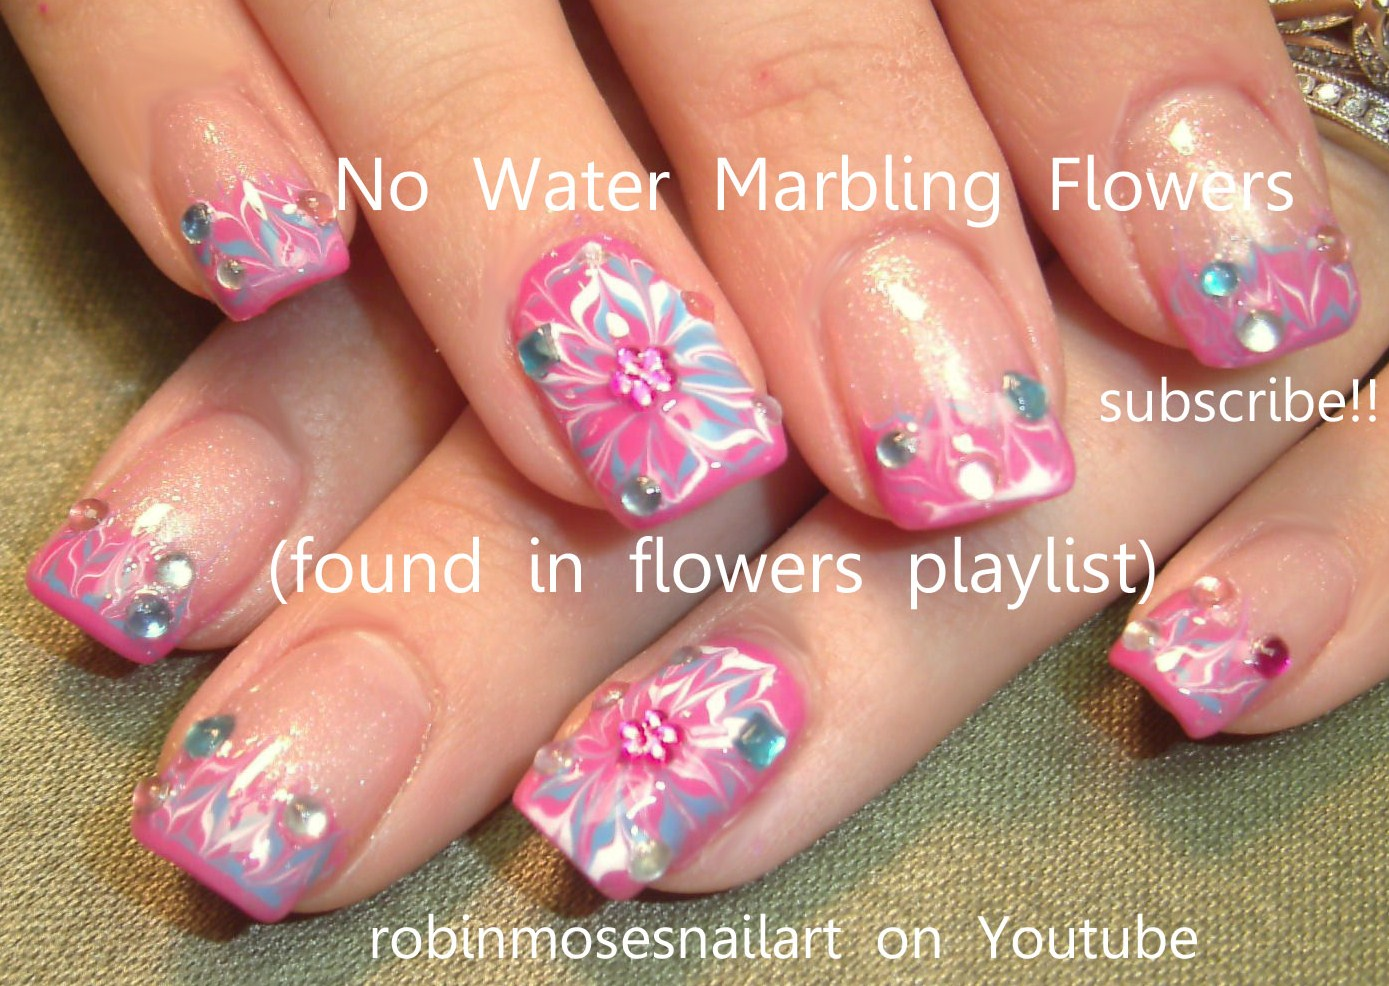 No Water Marble Flower Nail Art Marble Flower Nail Art Pink And